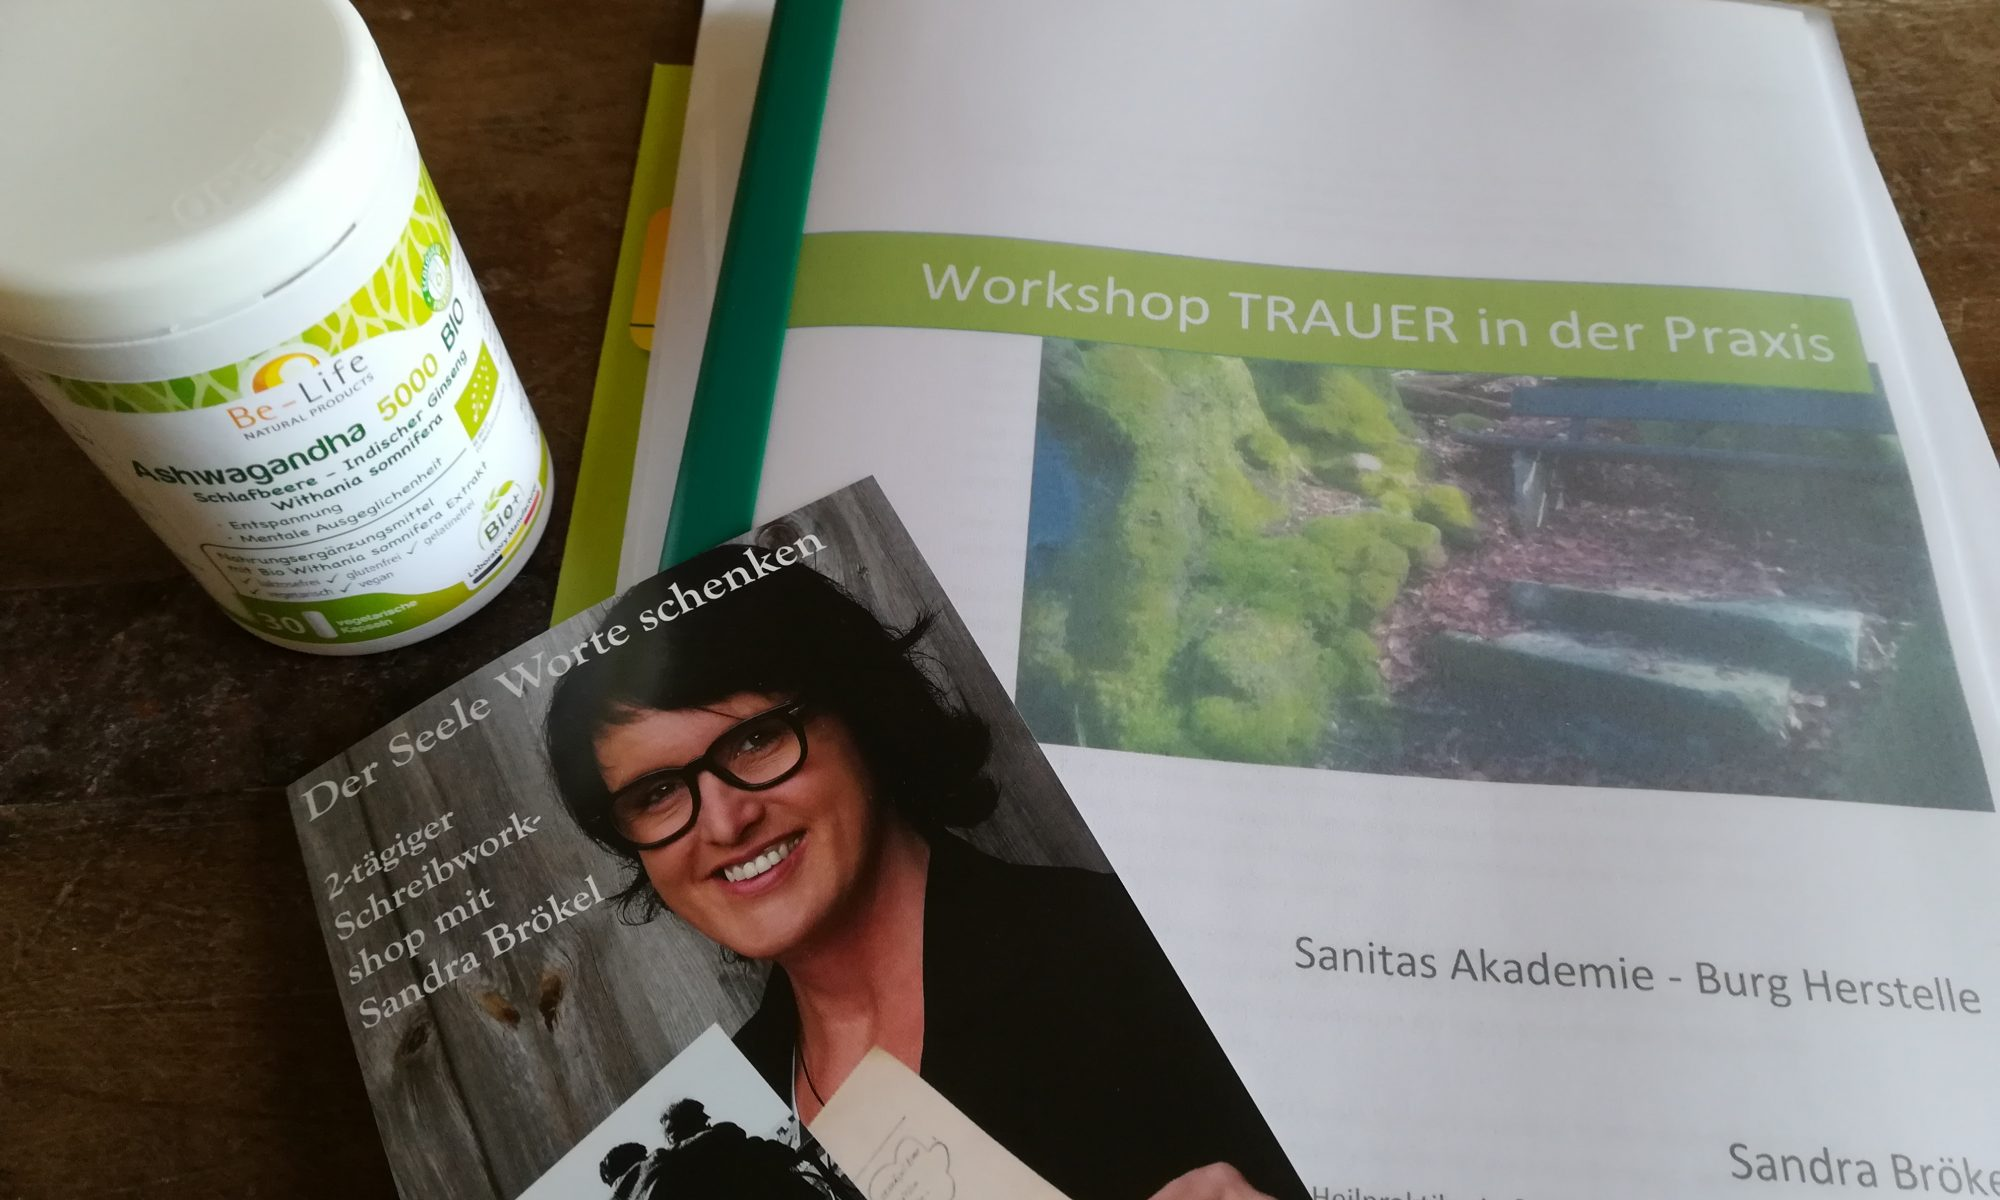 Workshop mit der Trauertherapeutin Sandra Brökel